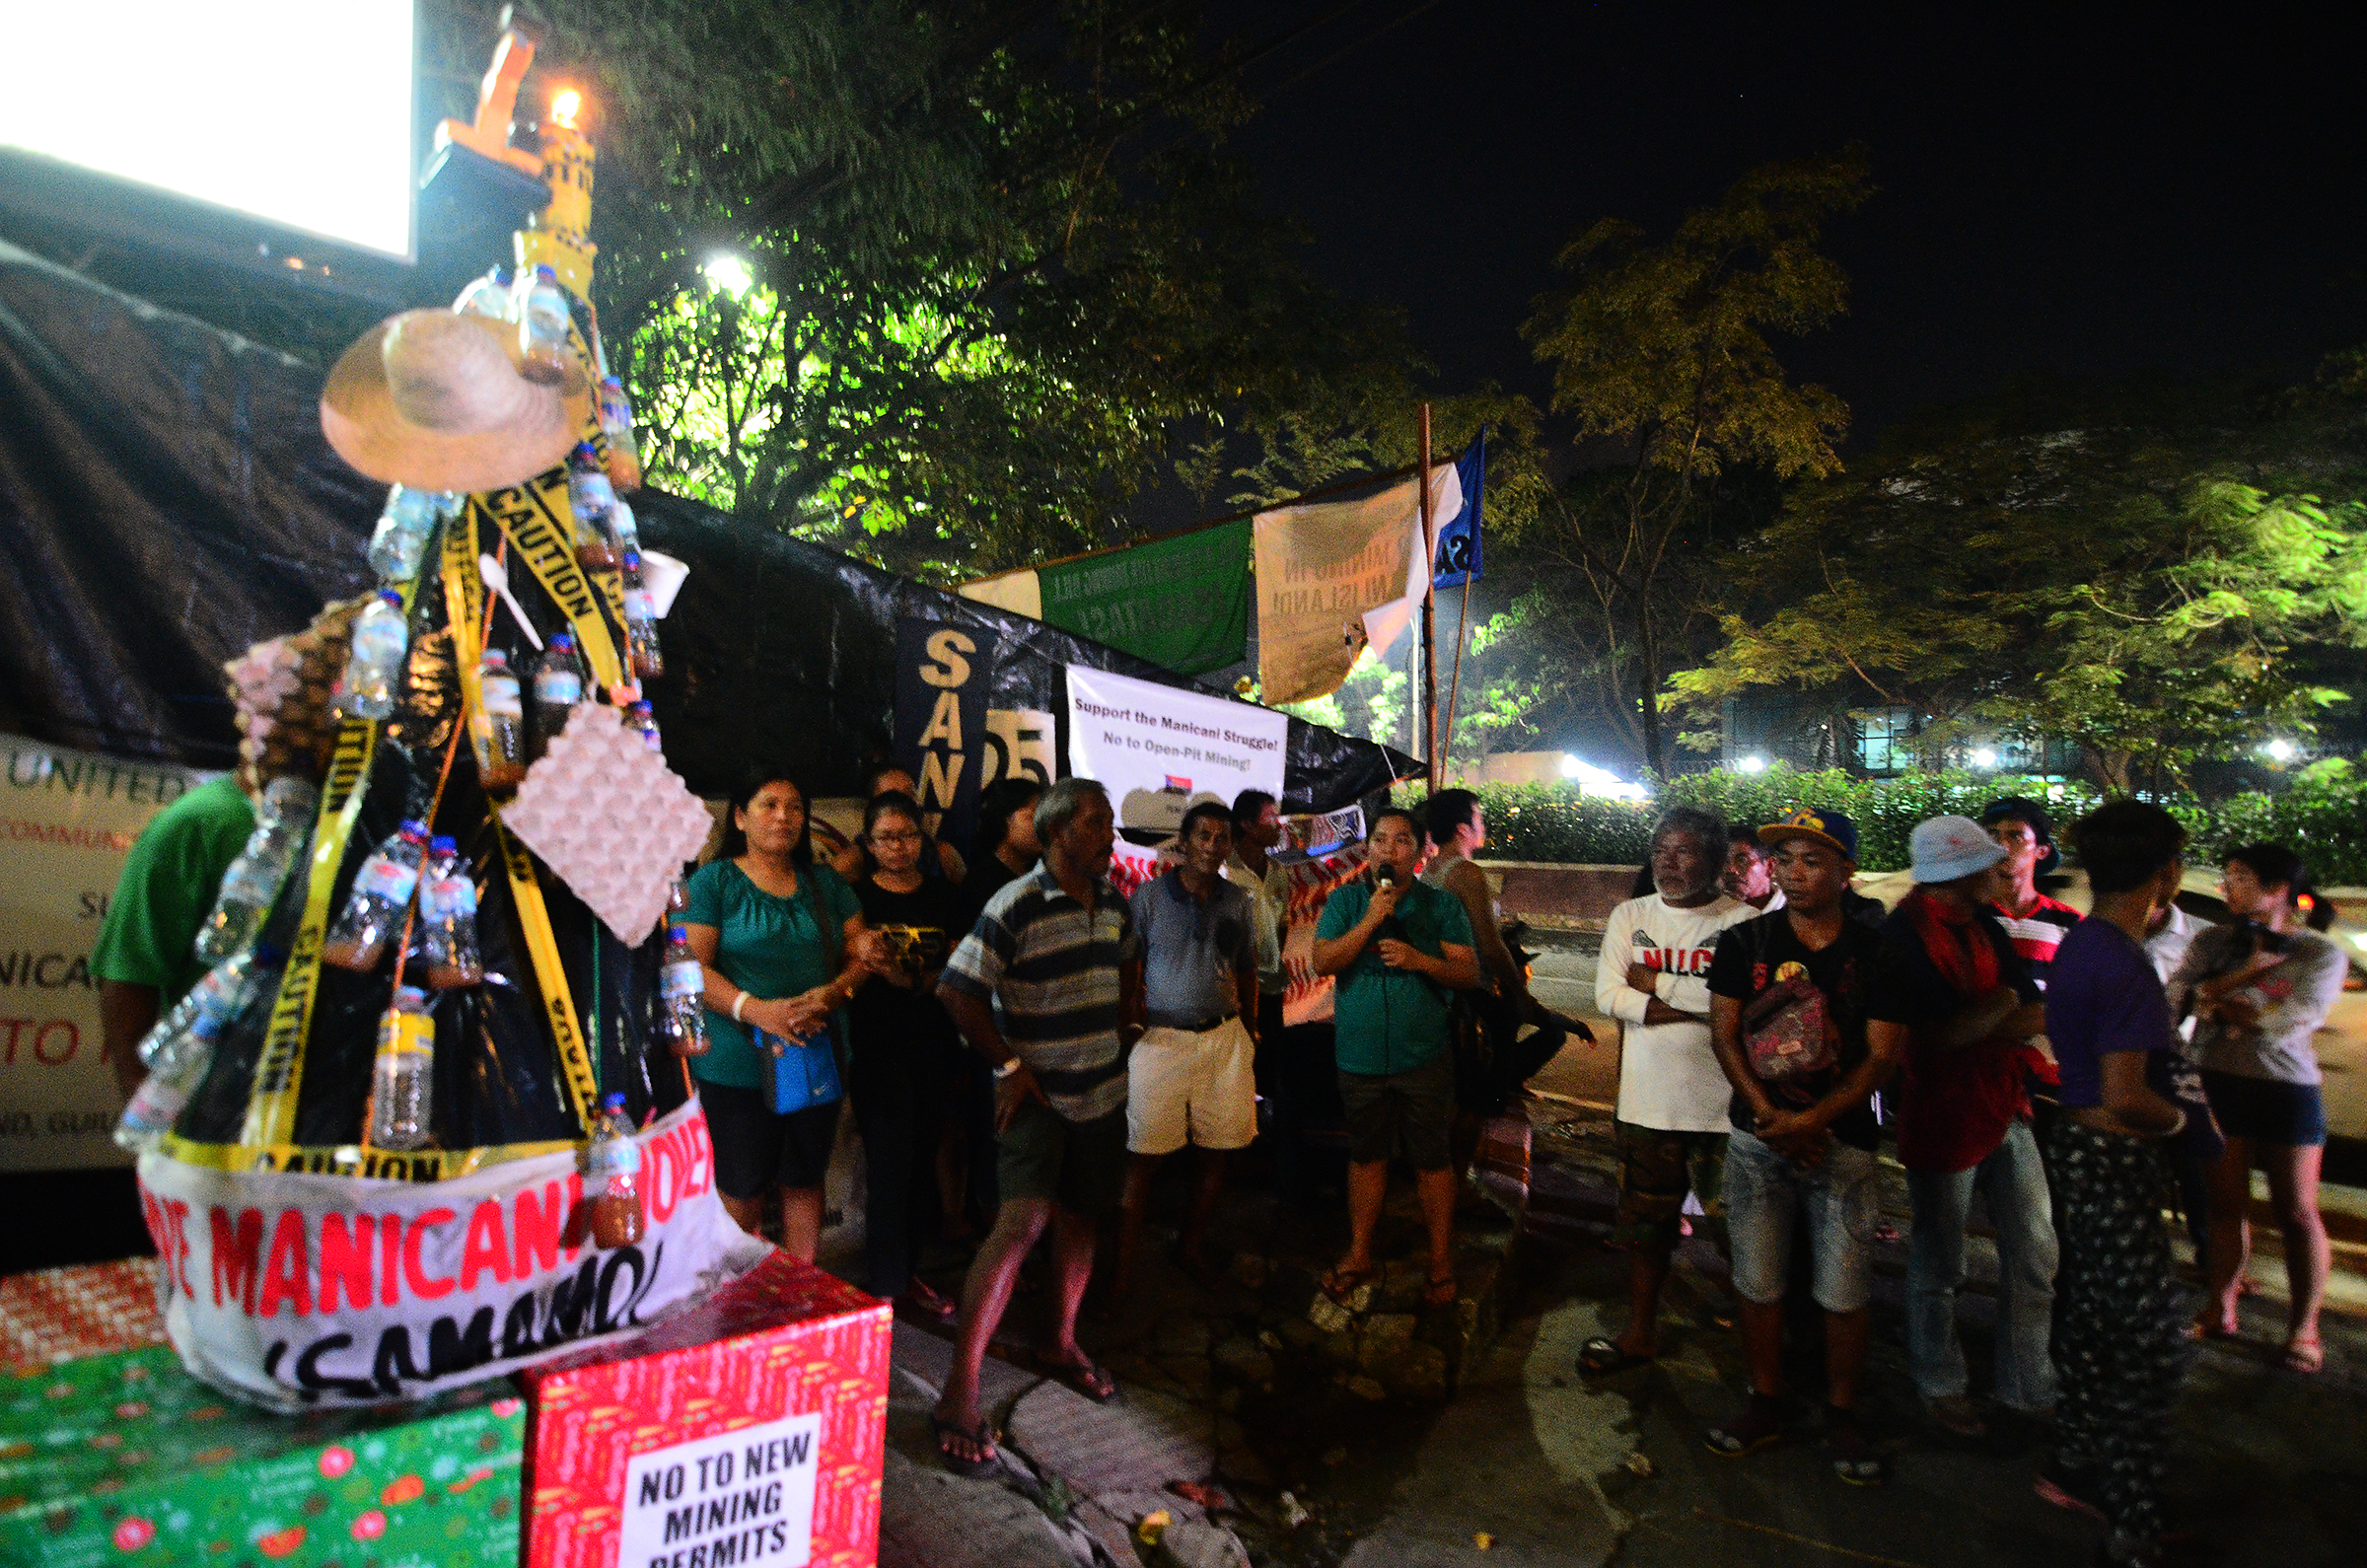 PROTEST. Residents of Manicani, Eastern Samar and Sta. Cruz Zambales all calling for an end of the open pit mining activities in their respective communities. Photo by Maria Tan/Rappler